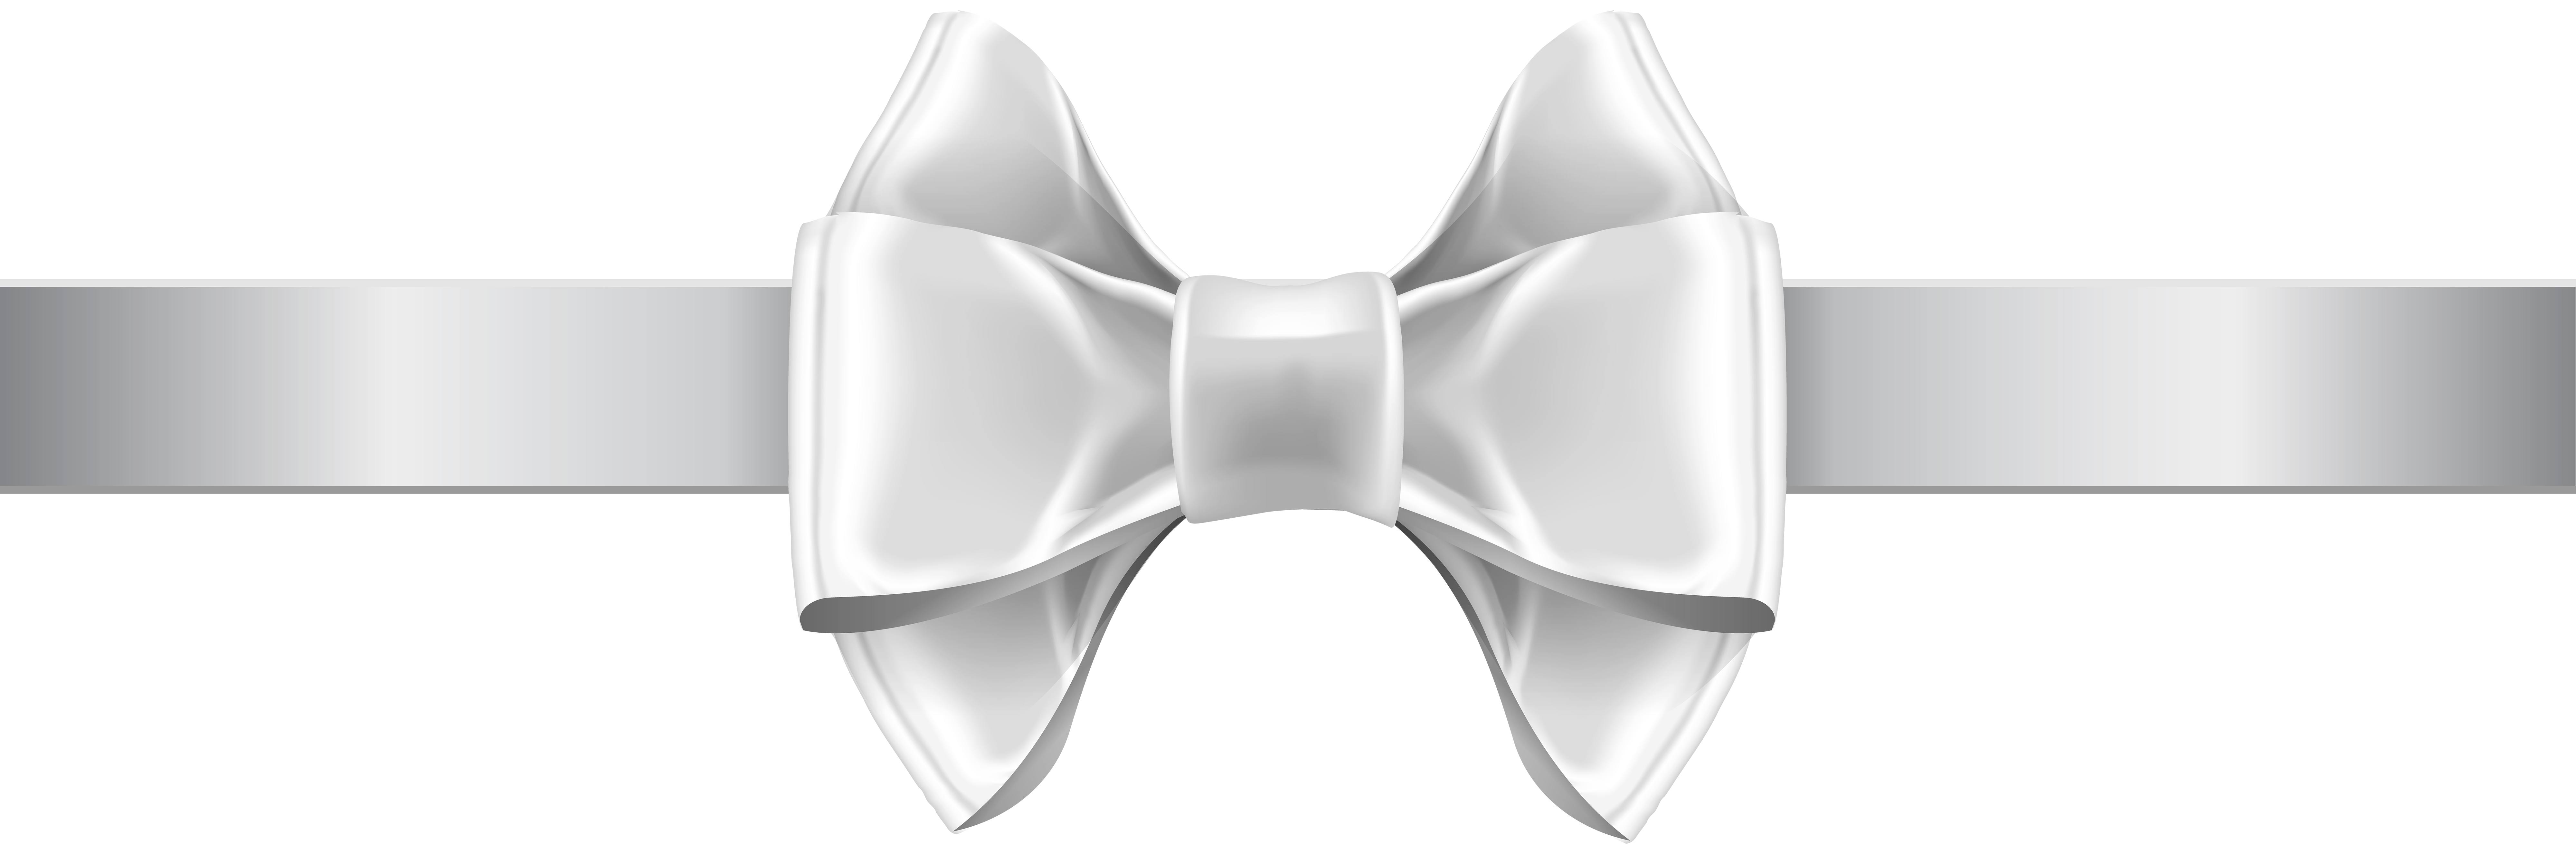 Png clip art image. Clipart bow black and white